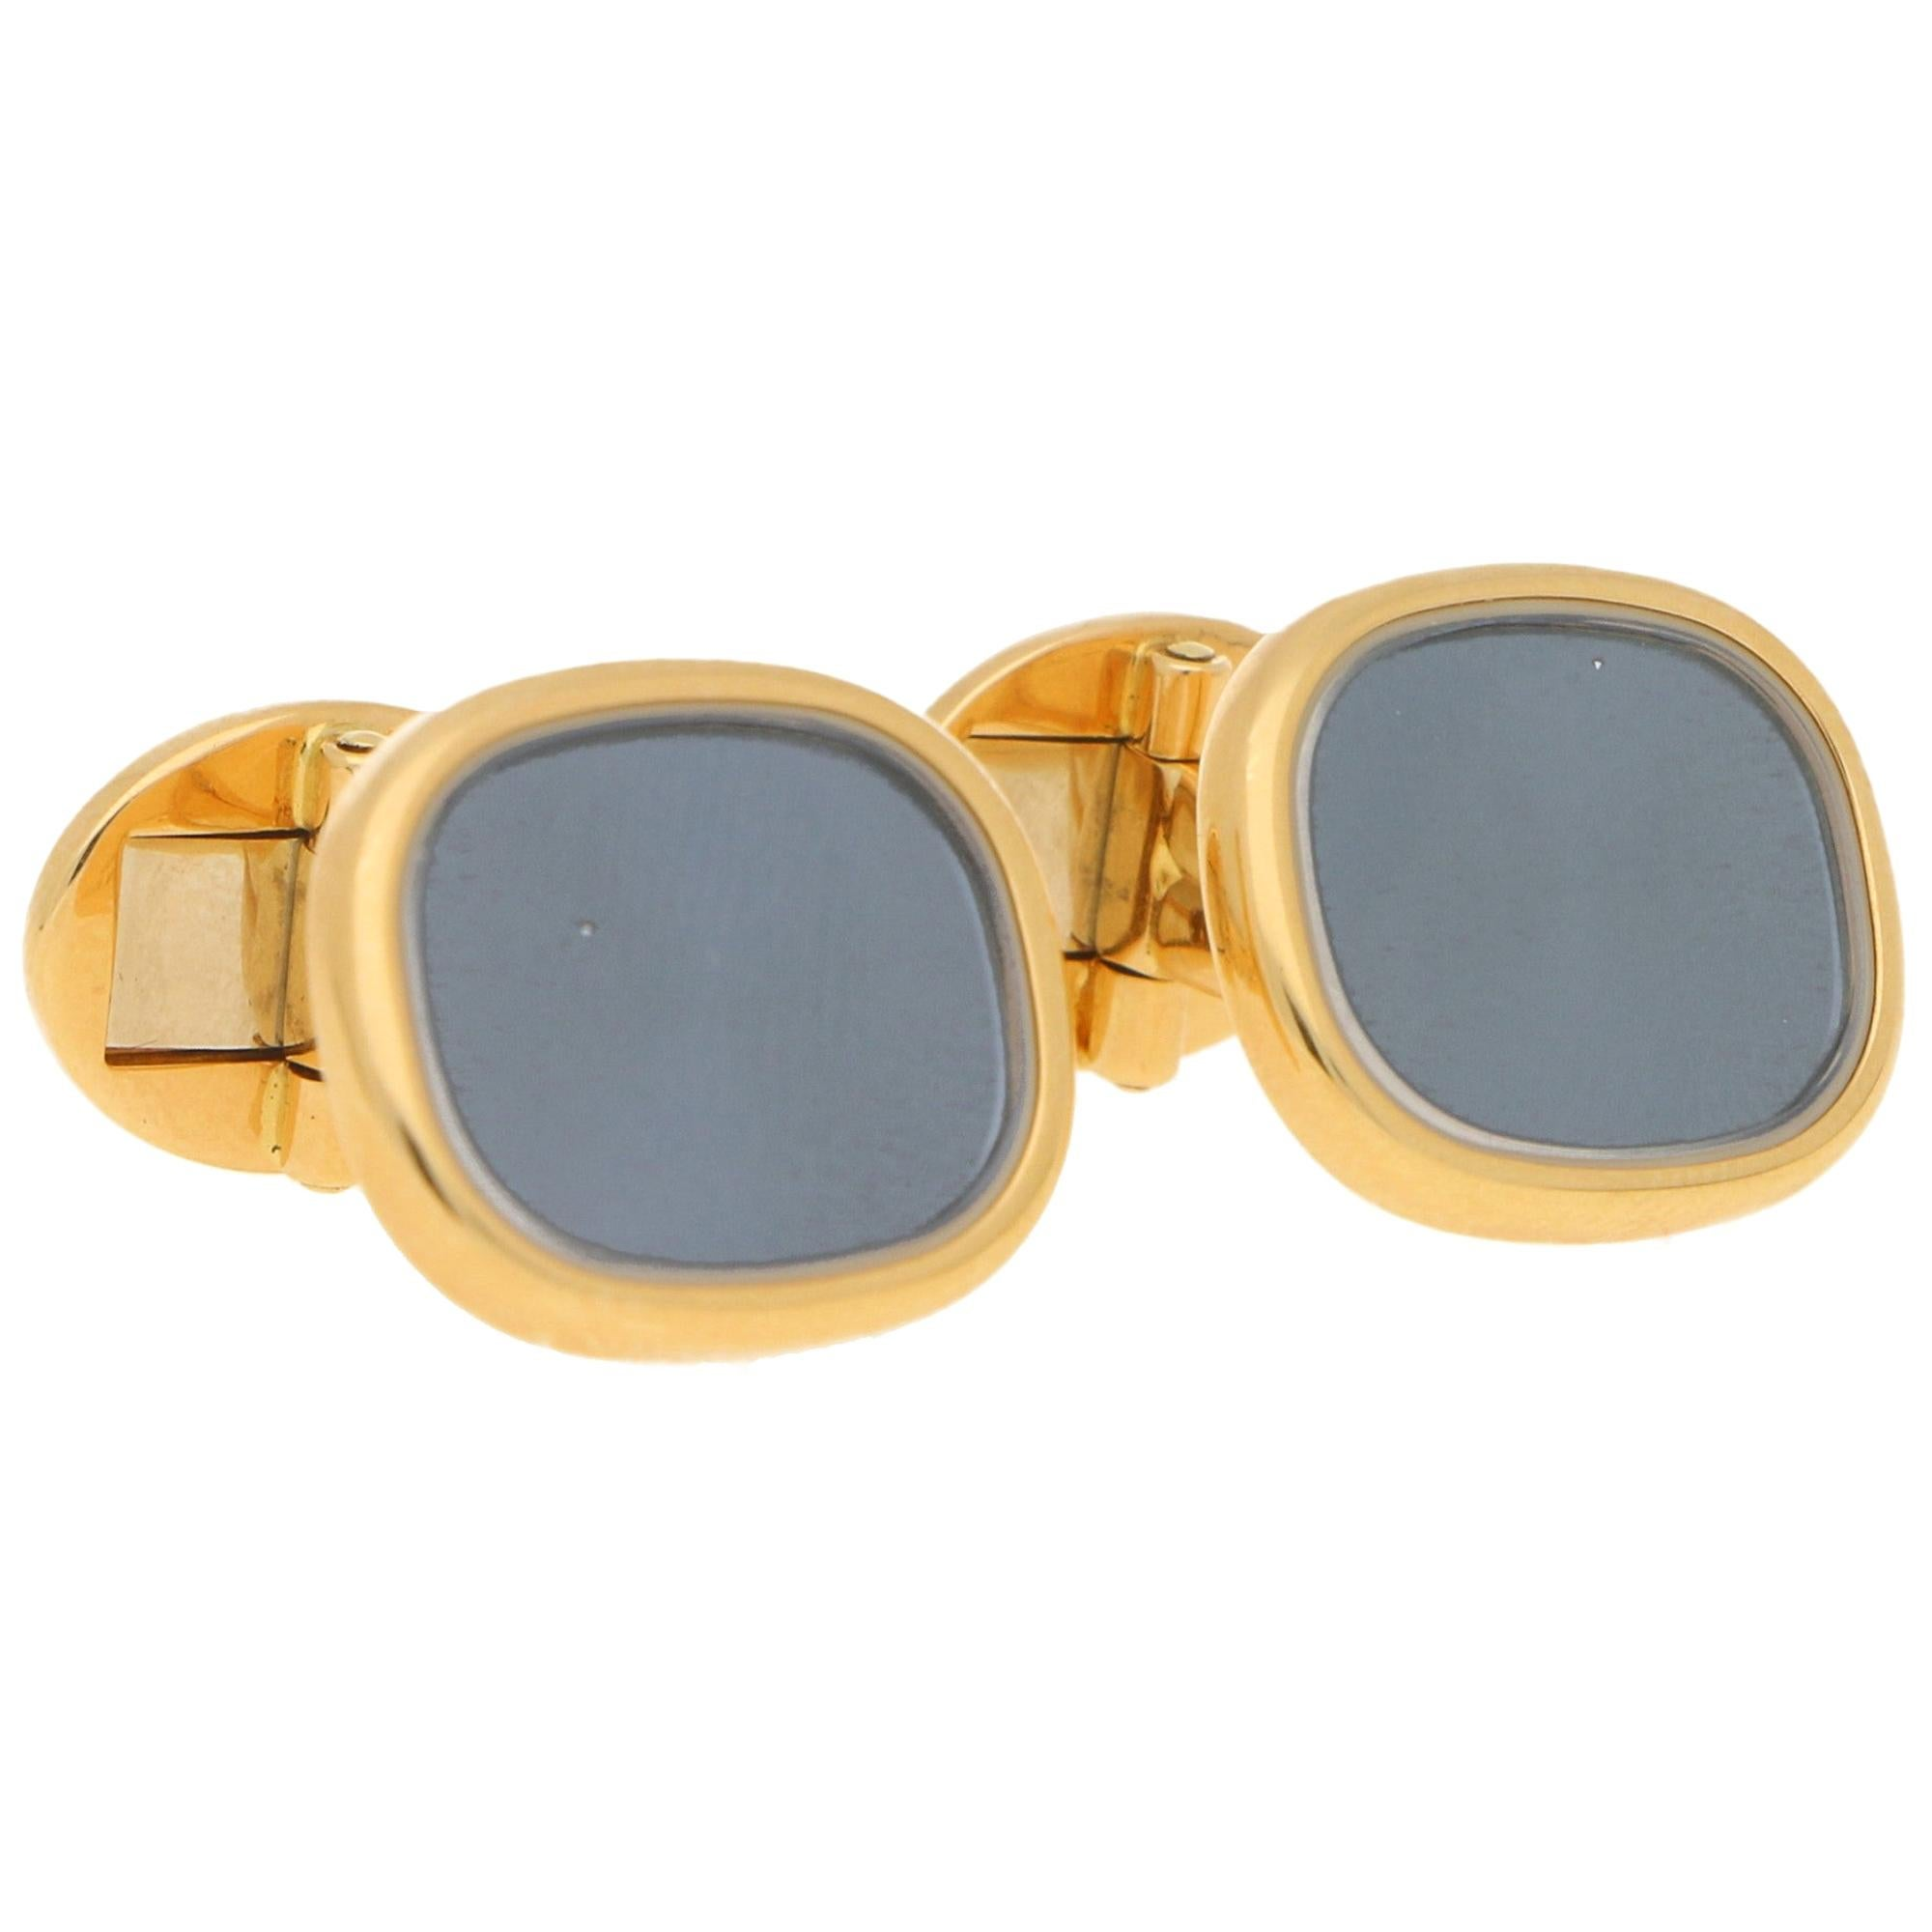 Patek Philippe Enamel and Rock Crystal Cufflinks in 18ct Yellow Gold